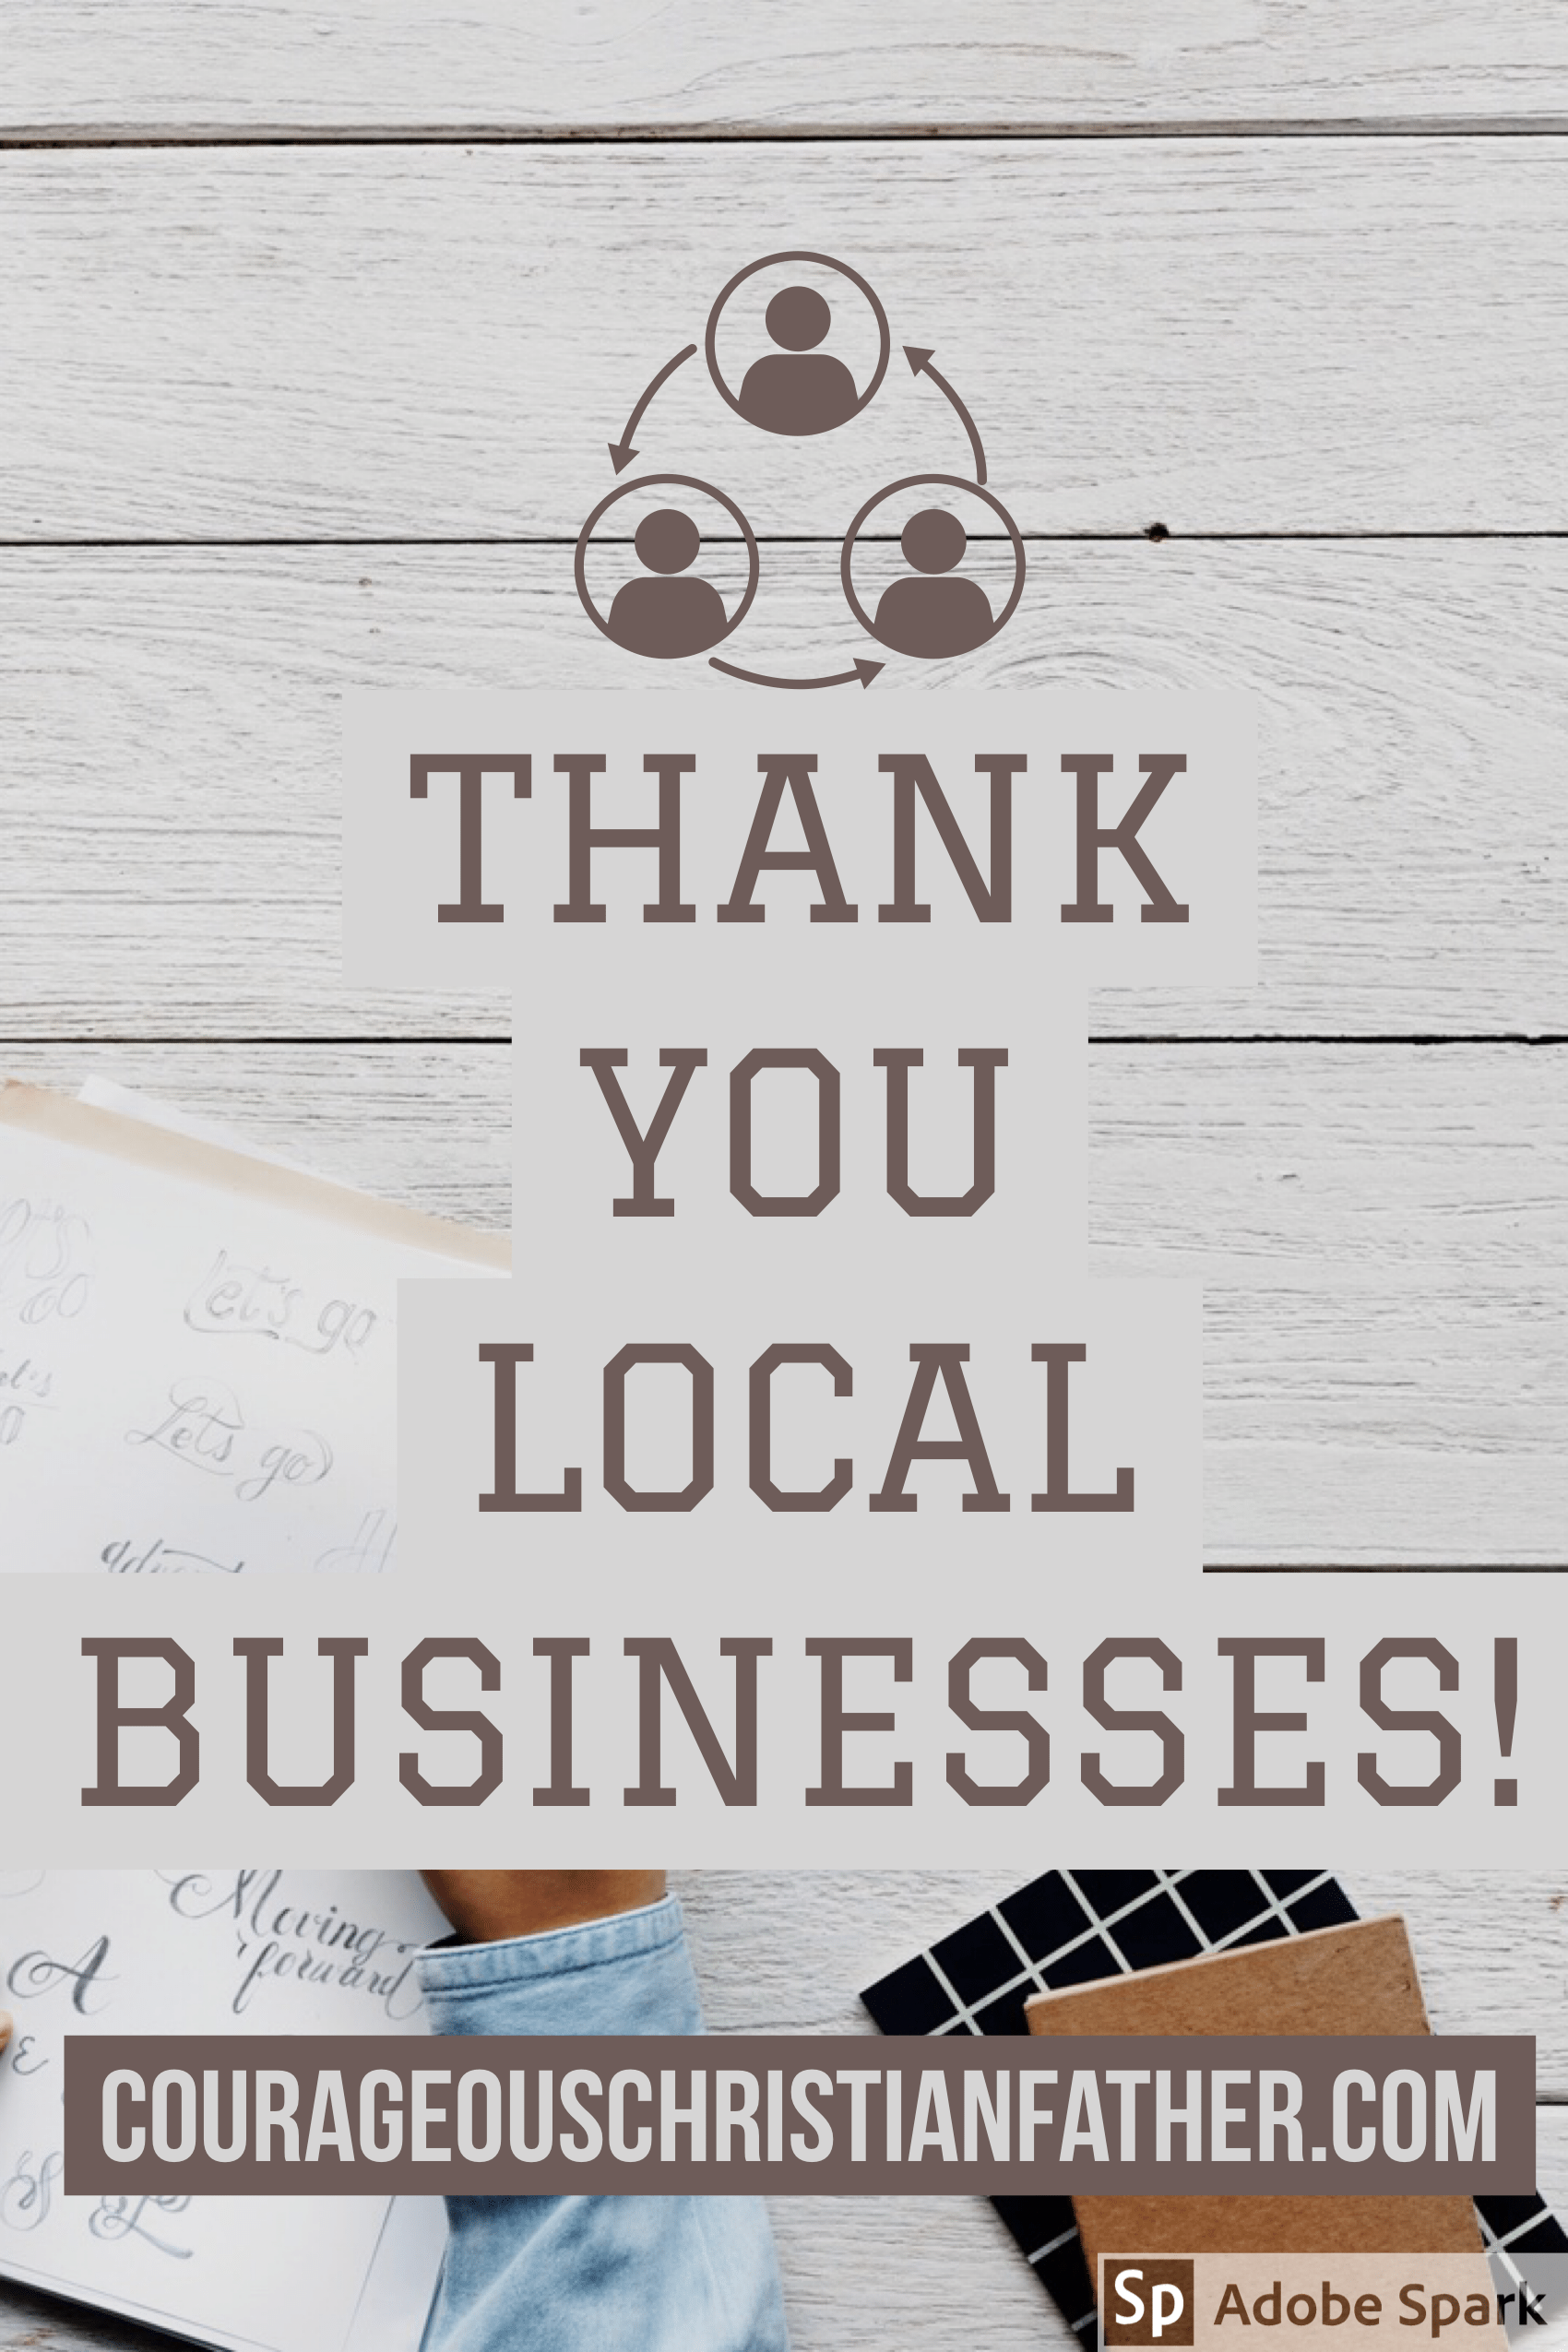 Thank You Shoutouts - All Local Businesses